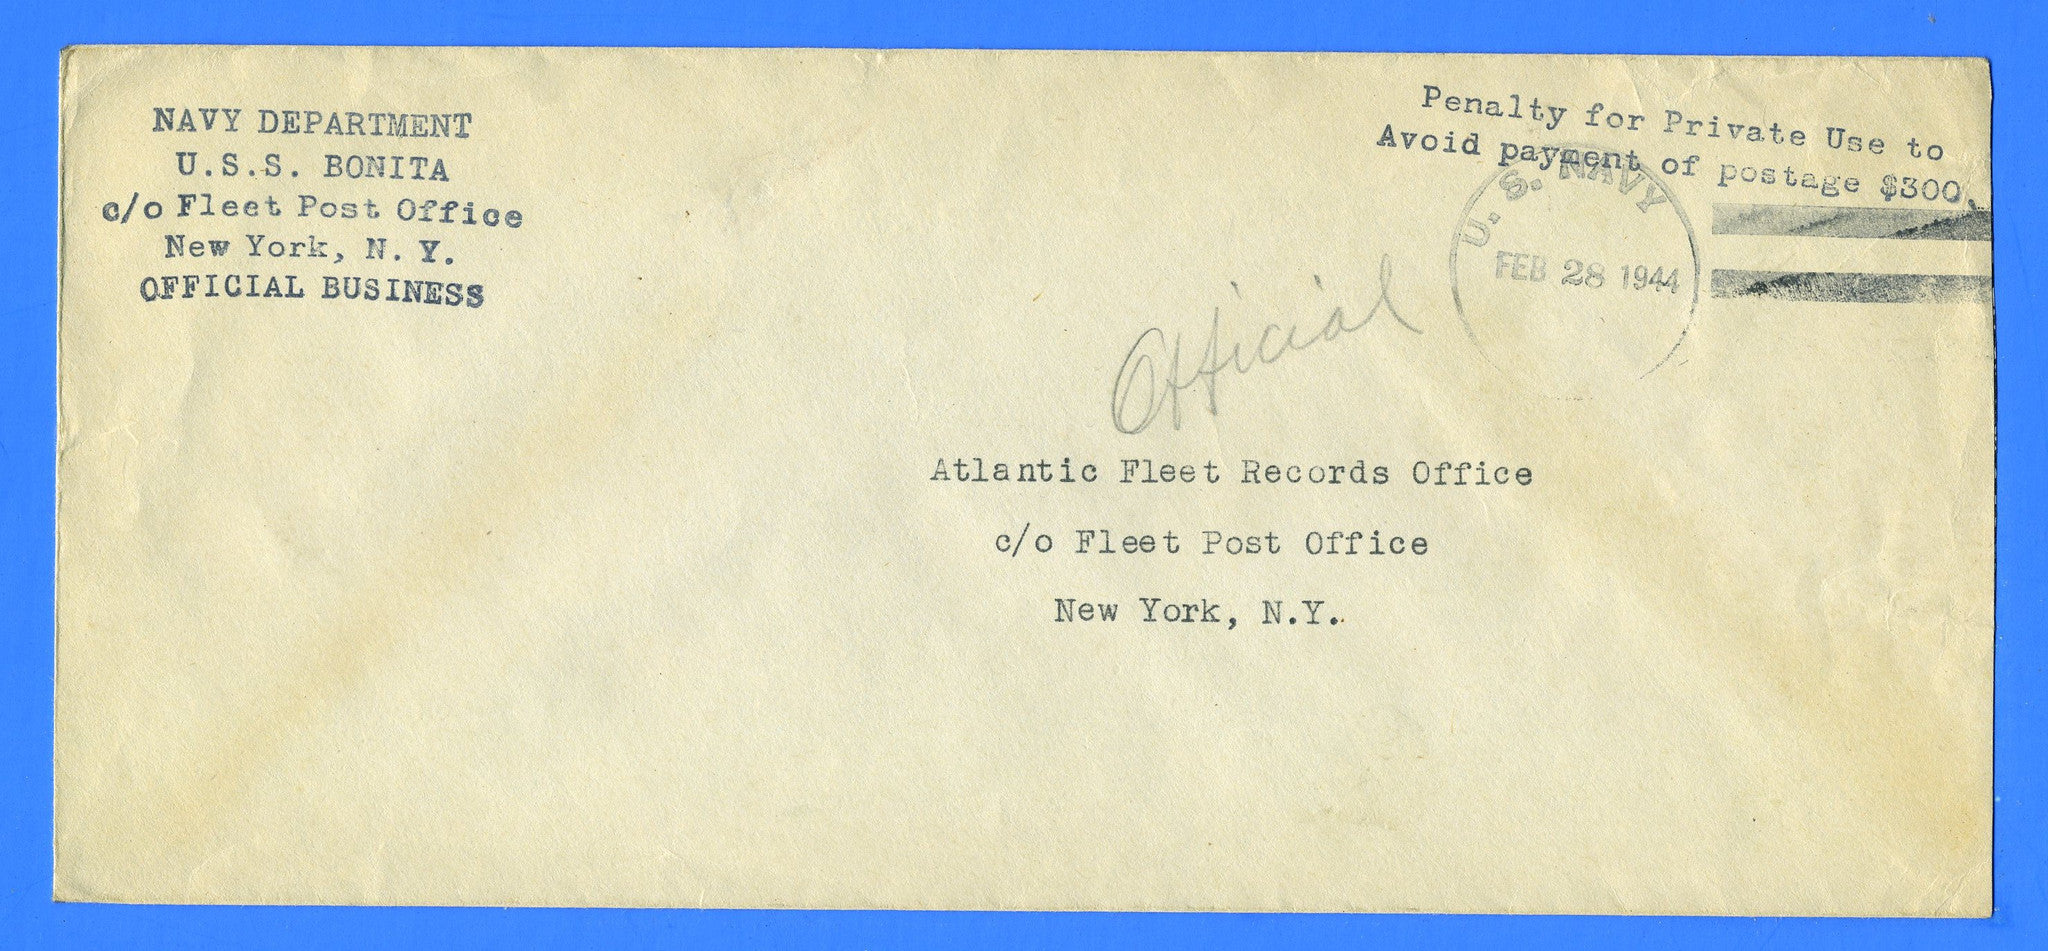 USS Bonita SS-165 Official Mail February 28, 1944